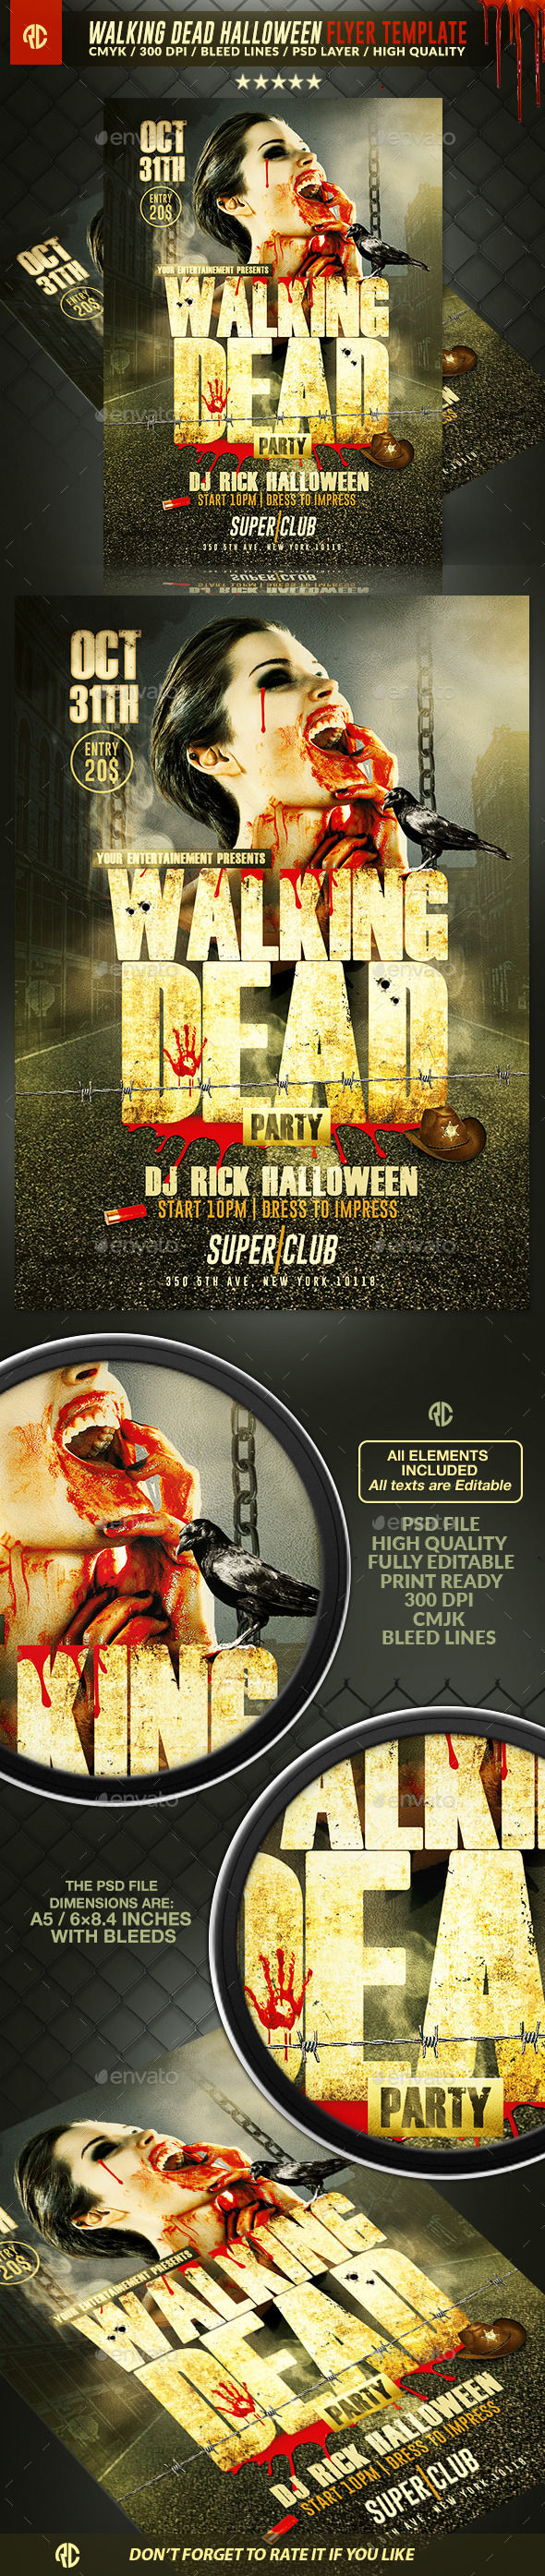 Walking Dead Halloween by RomeCreation (Halloween party flyer)